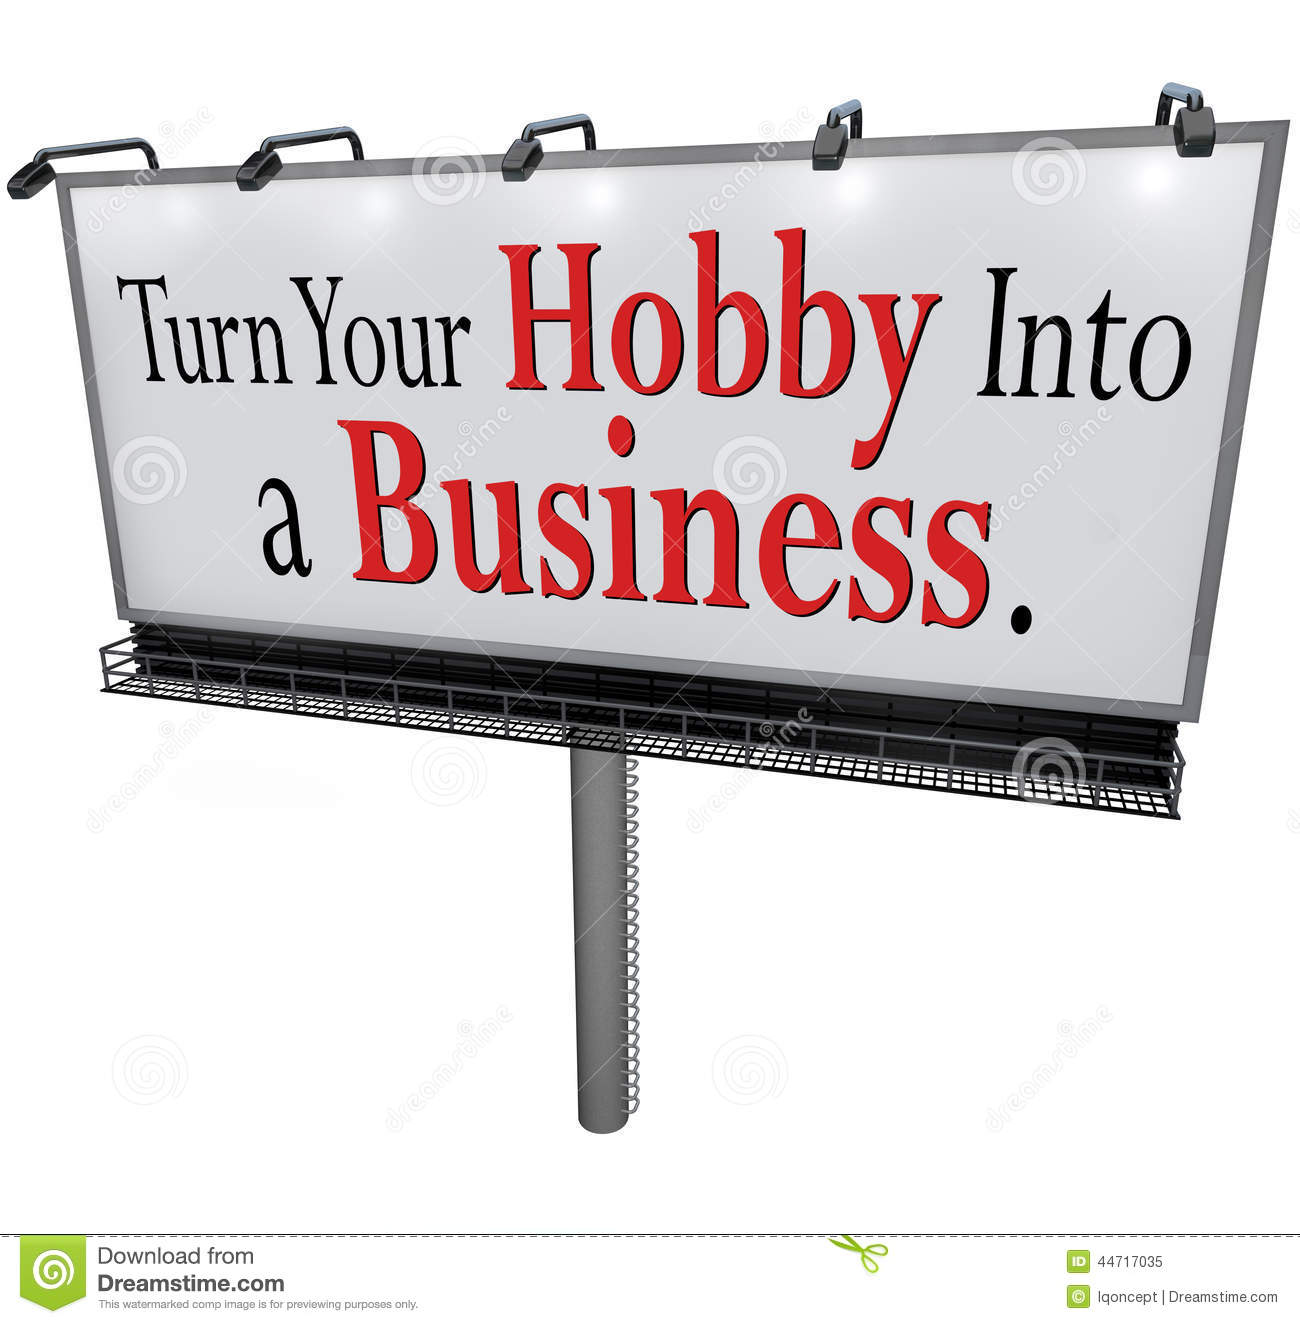 turn your hobby into a business billboard sign - Hobby Into Business Hobby Work Turning Hobby Into Business